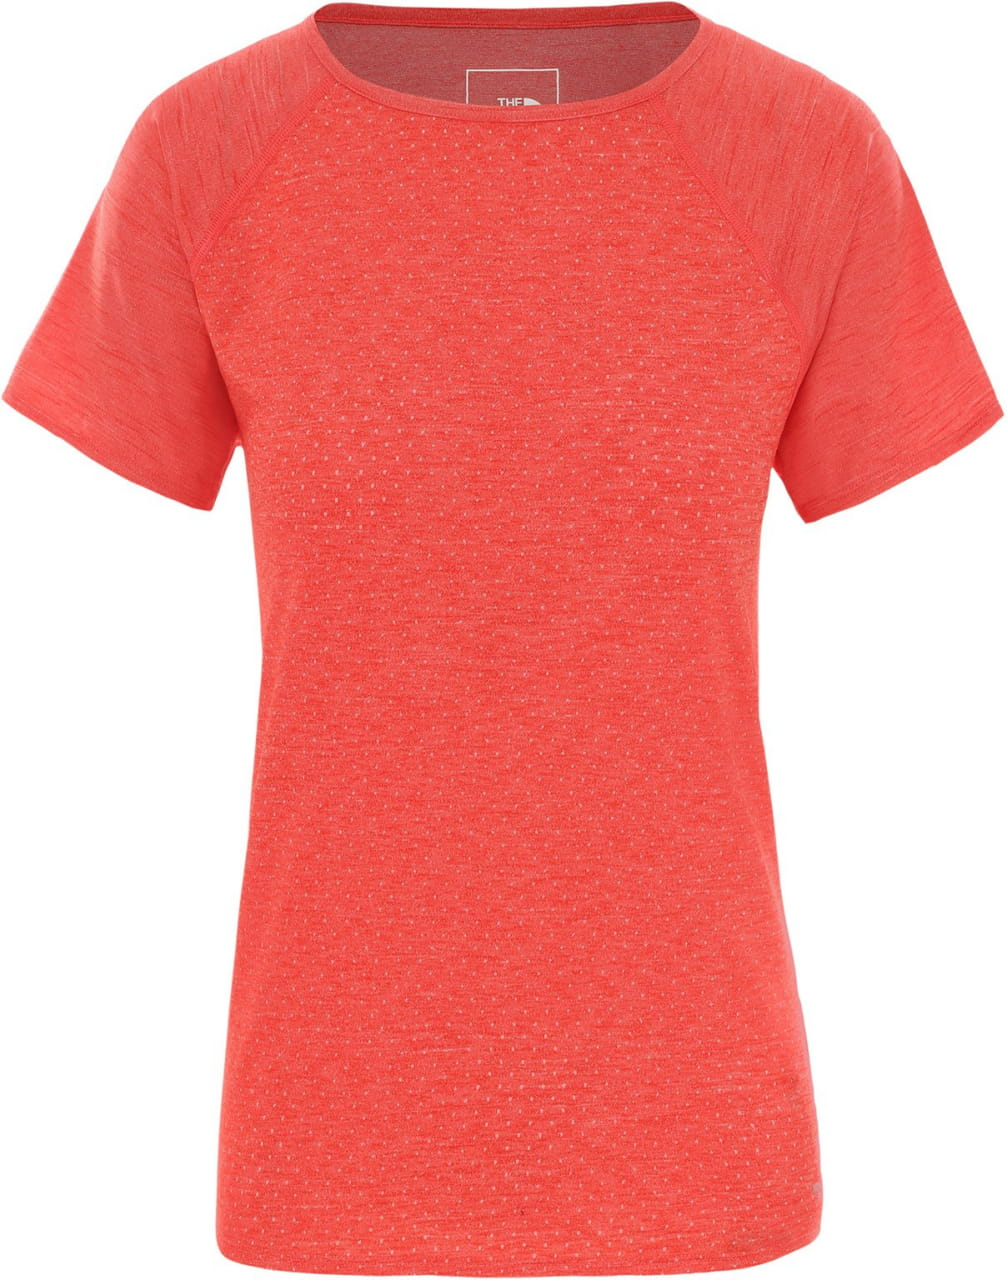 T-Shirts The North Face Women's Active Trail Jacquard T-Shirt